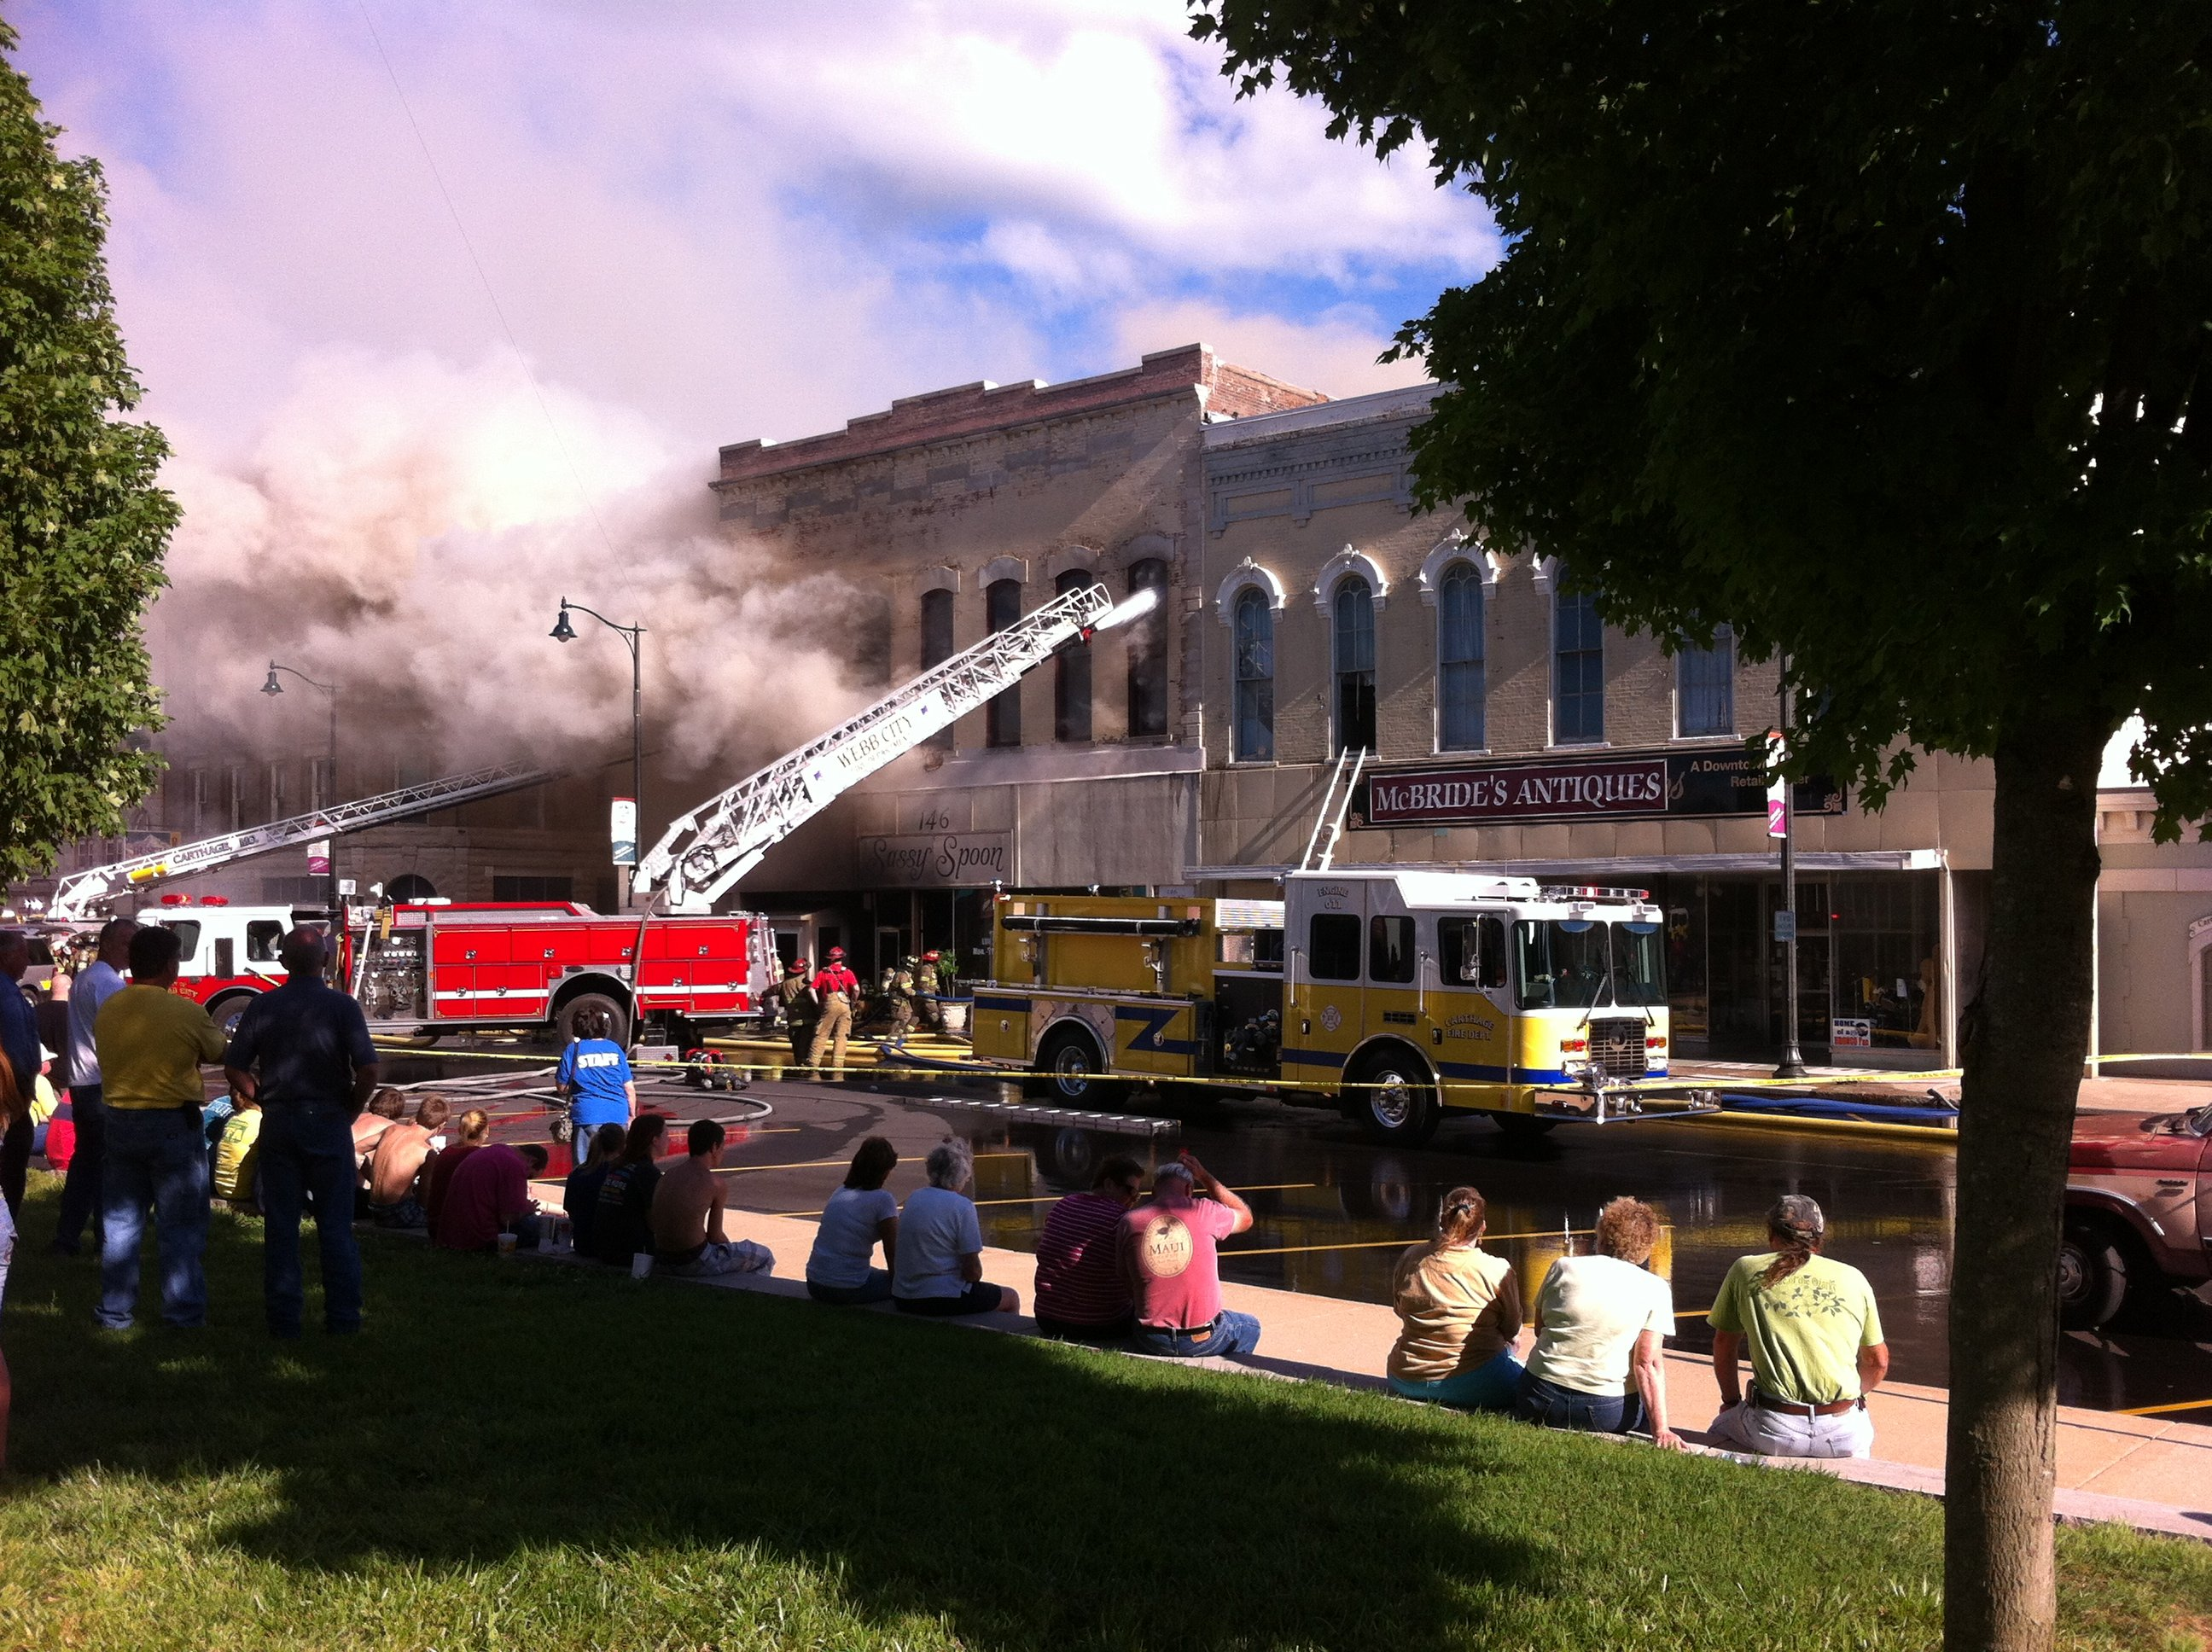 2013 image of fire that destroyed this building.